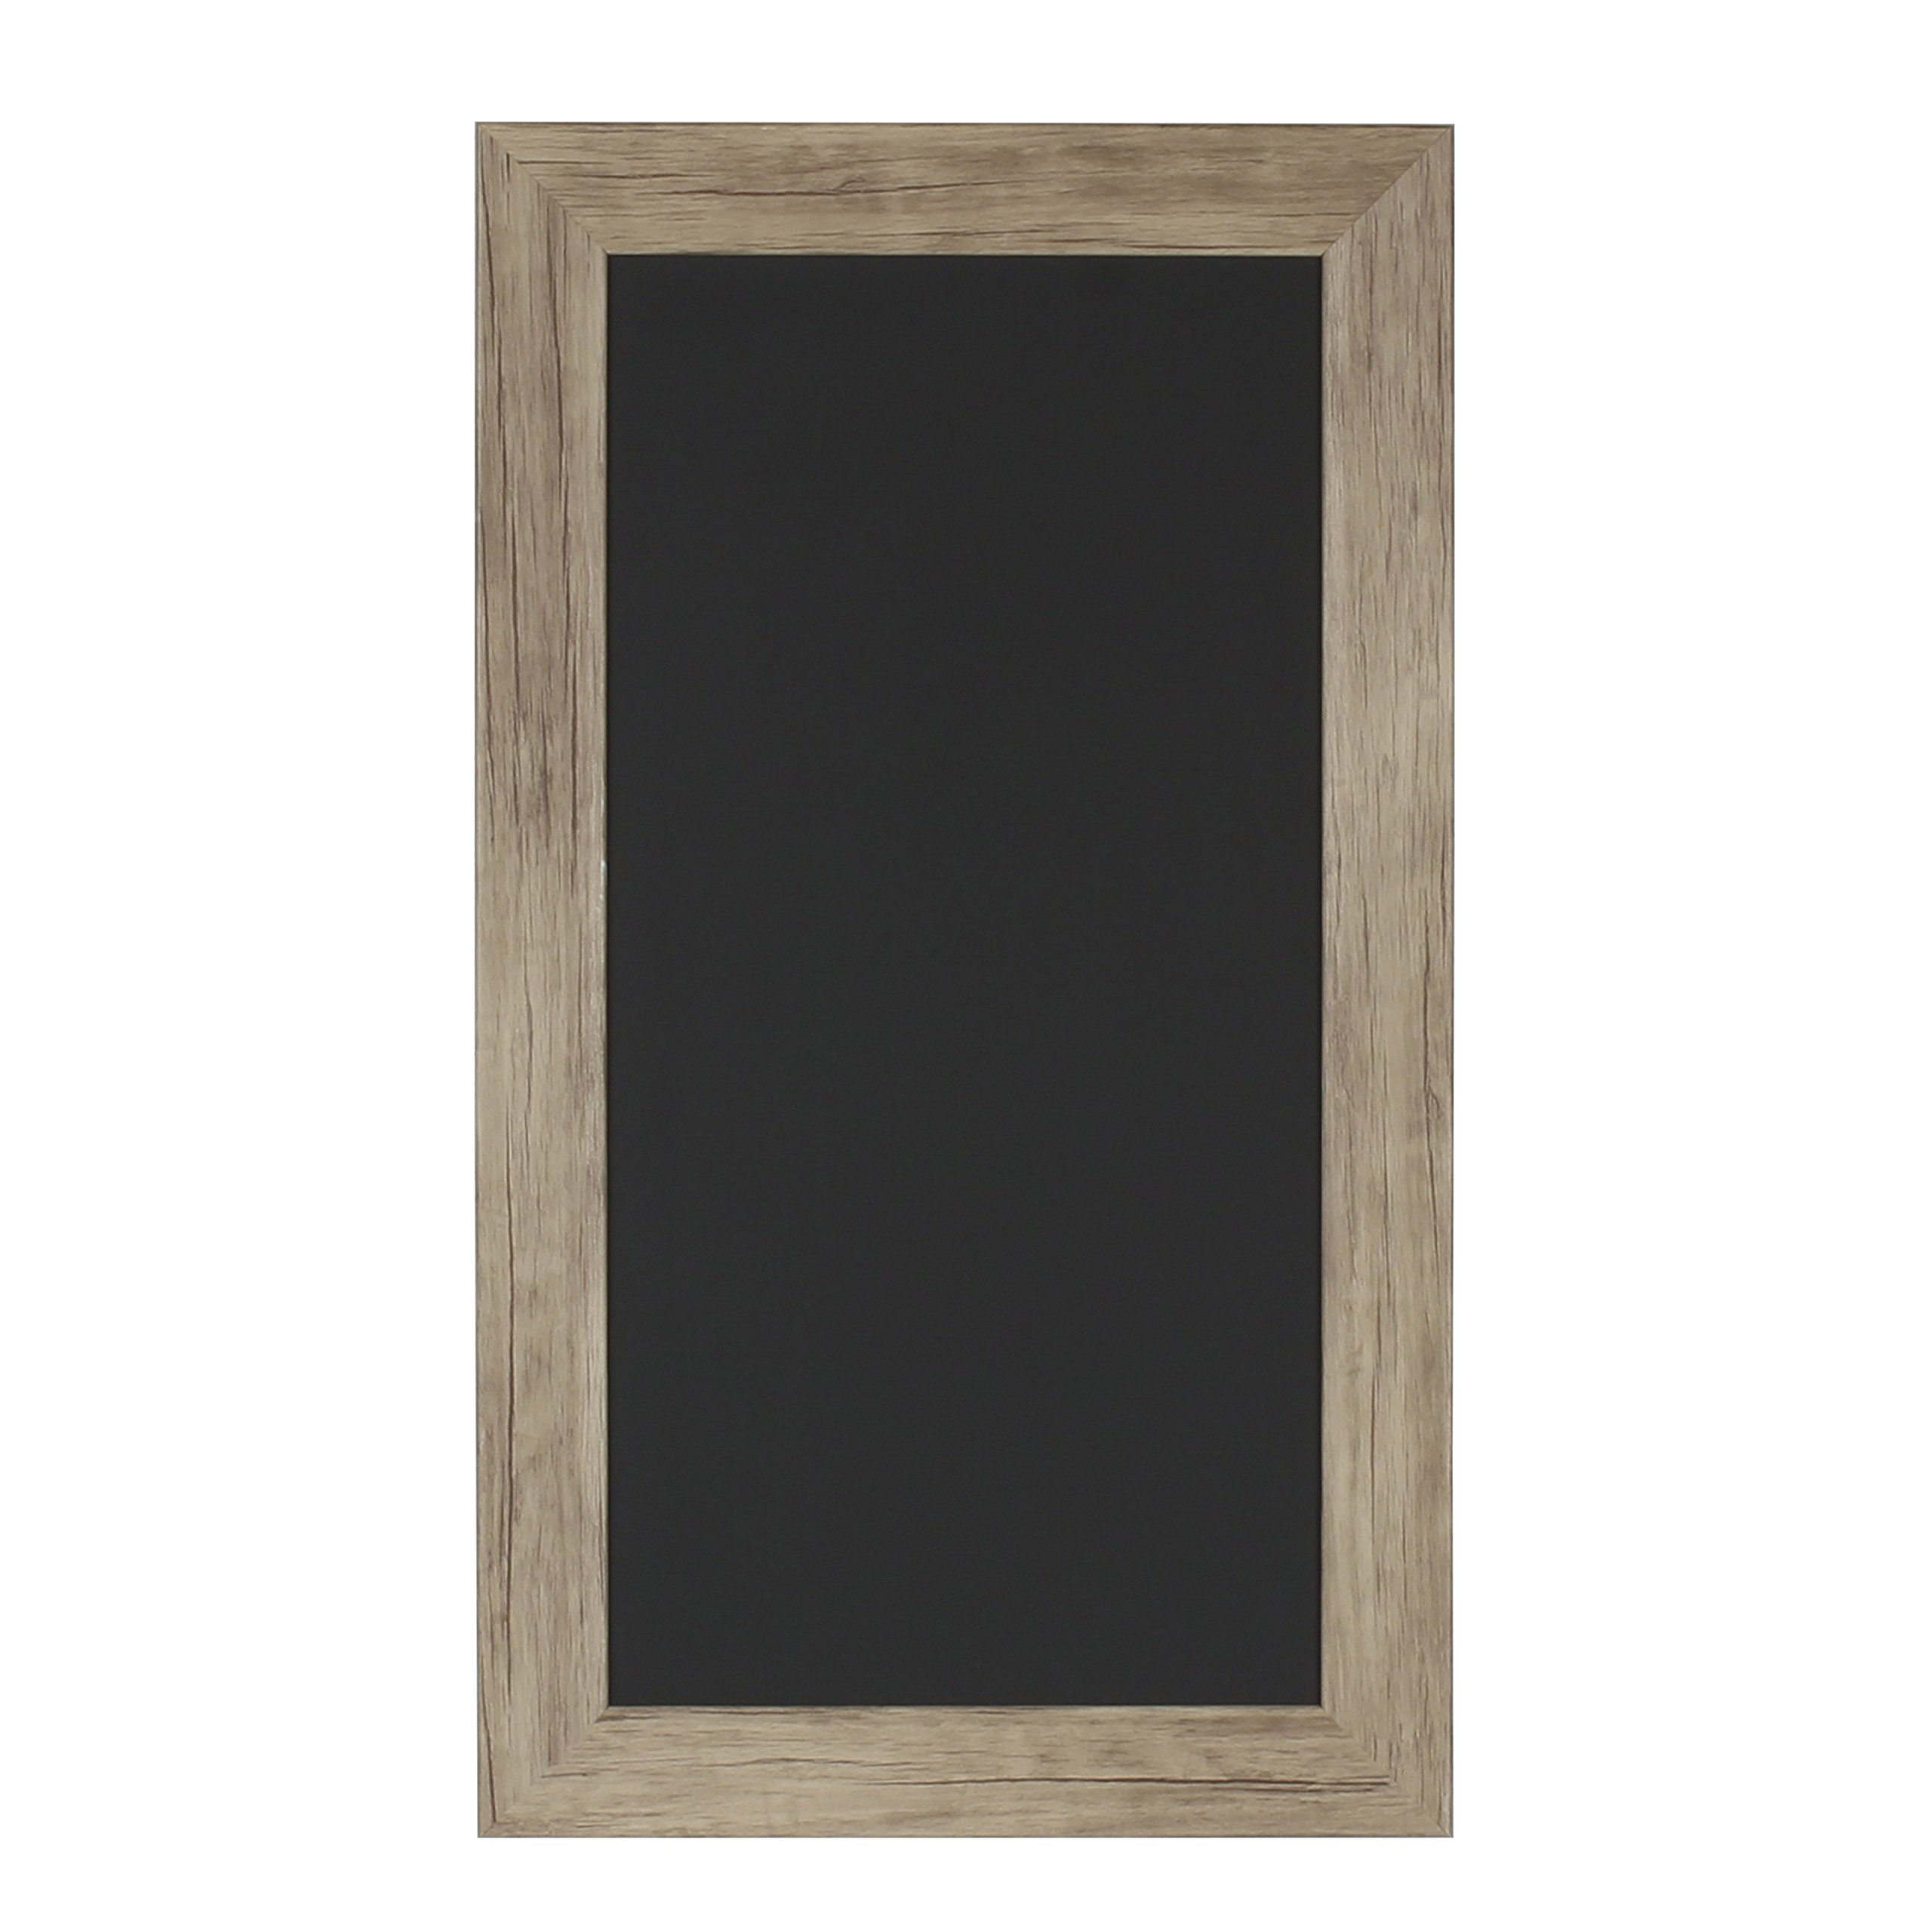 DesignOvation Beatrice Wall Mounted Framed Magnetic Chalkboard, 13x23, Rustic Brown by DesignOvation